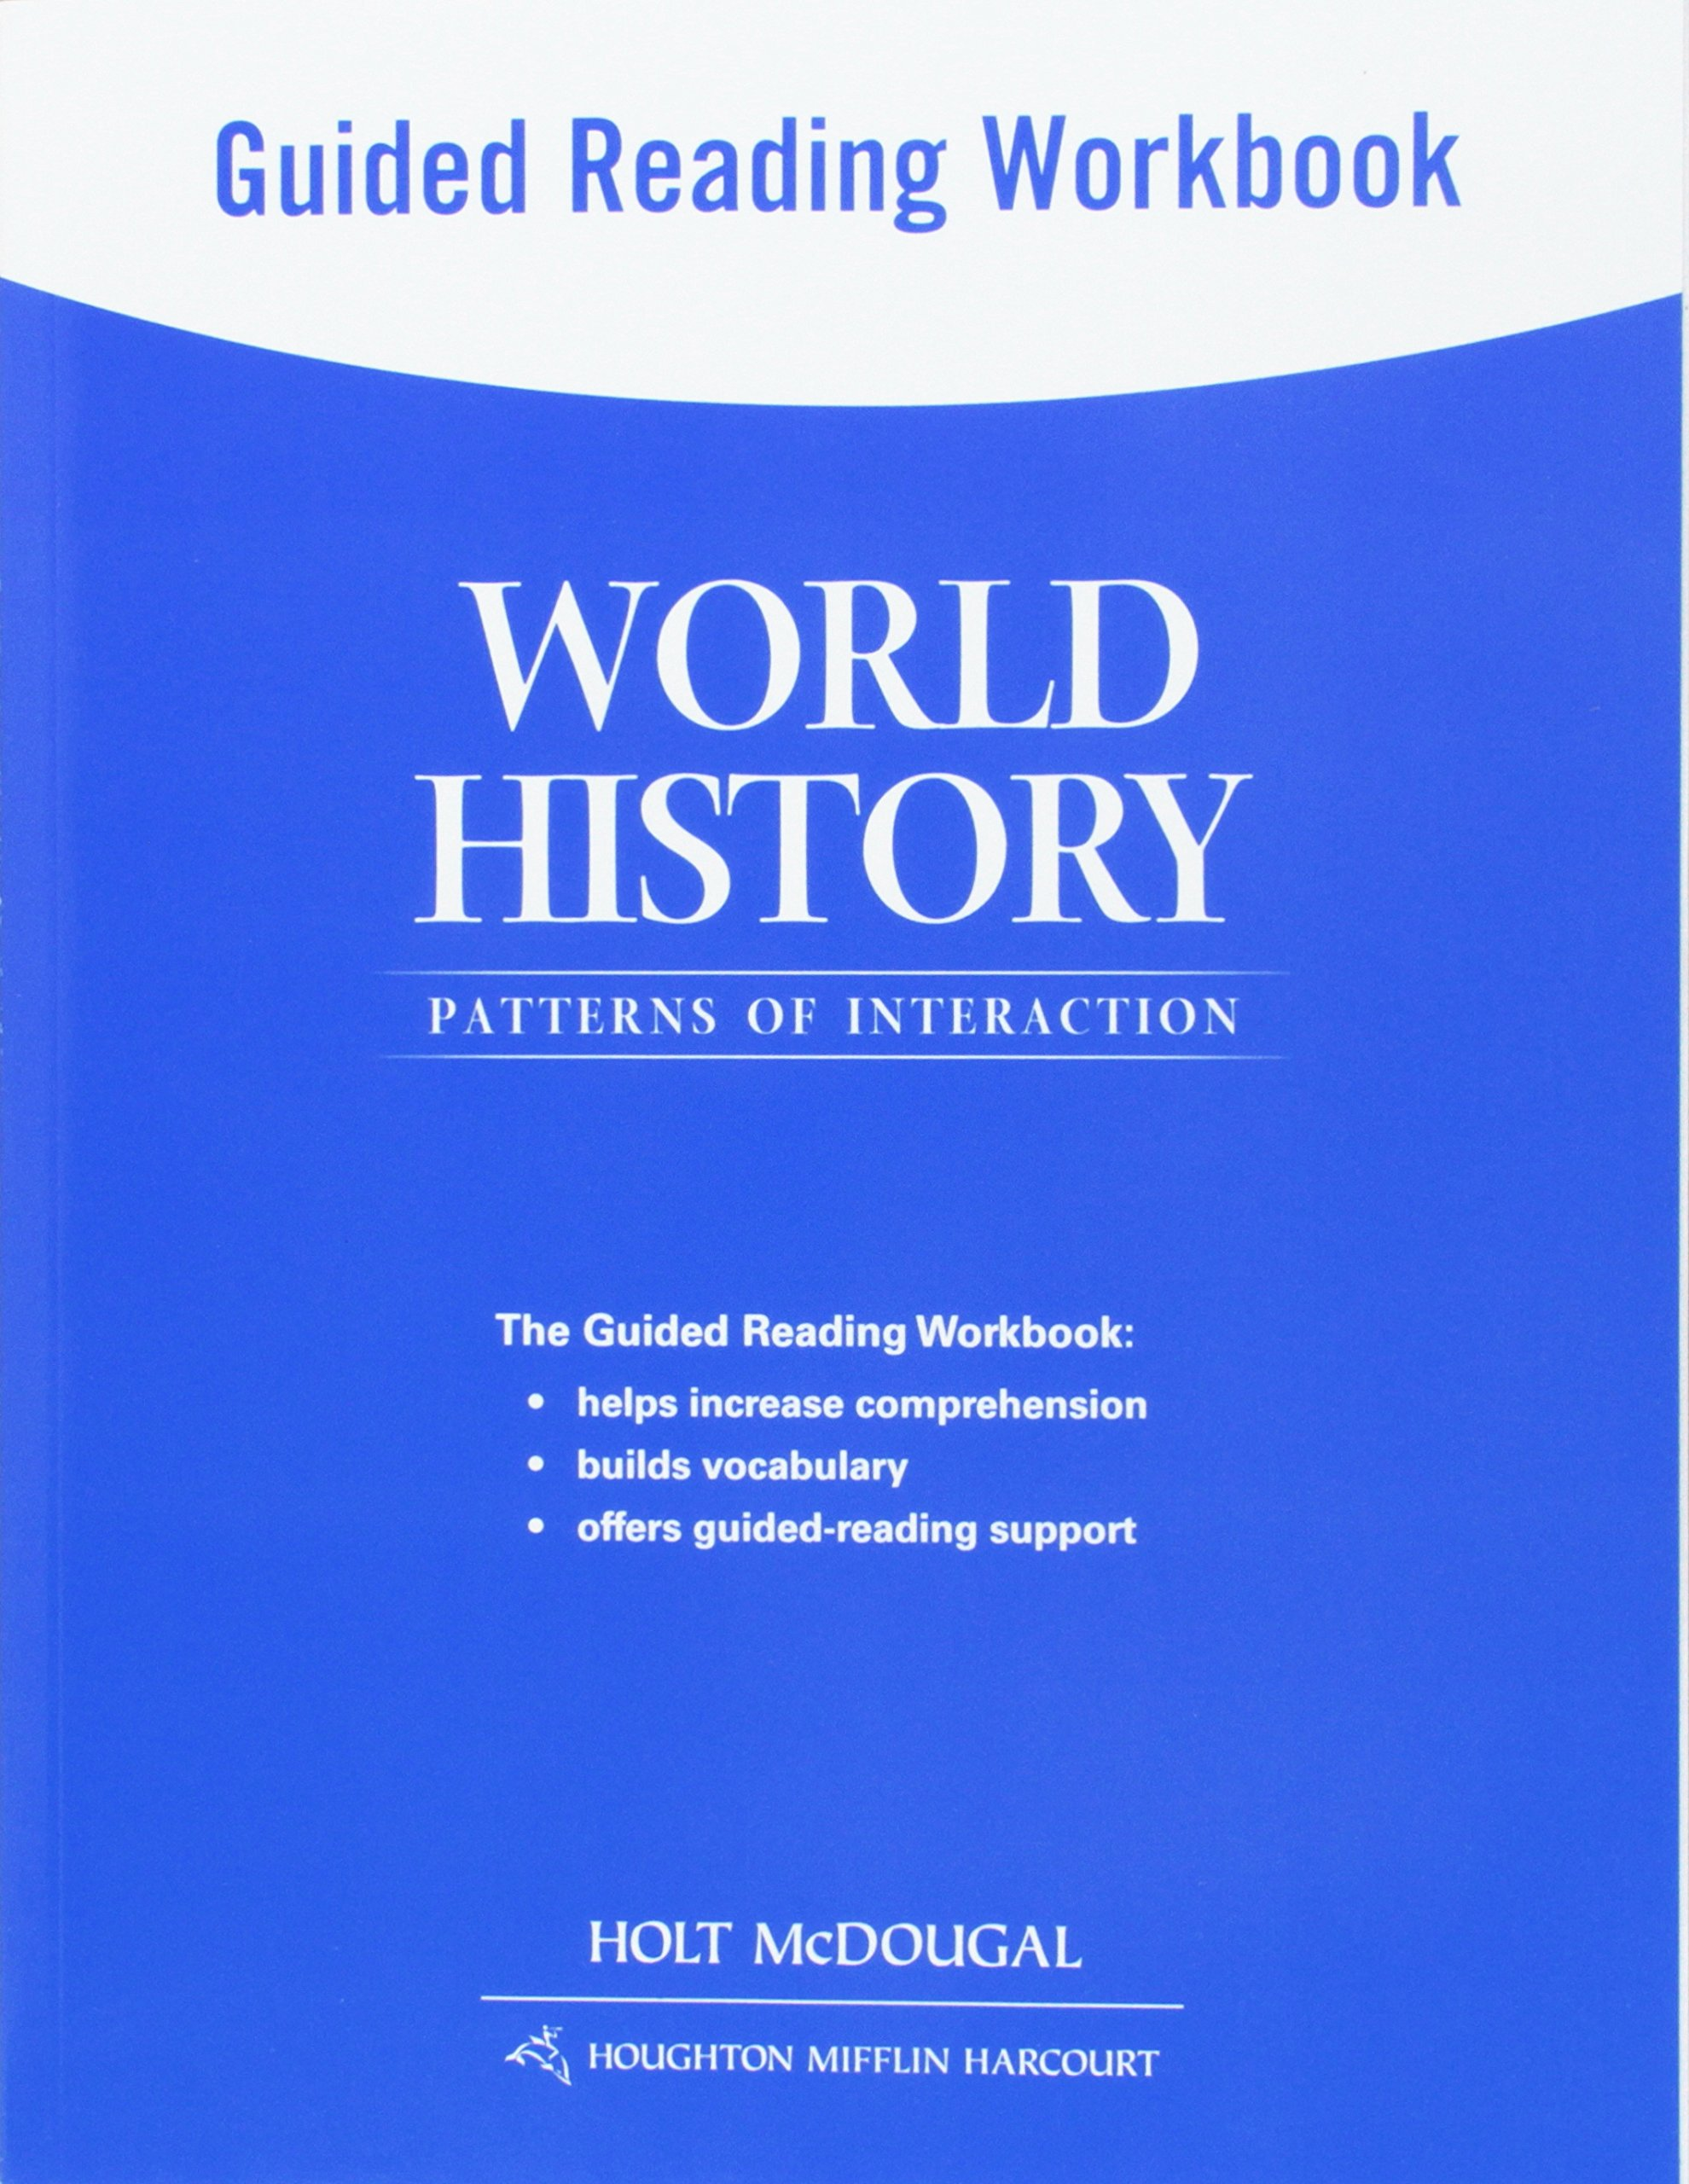 World history patterns of interaction guided reading workbook world history patterns of interaction guided reading workbook survey holt mcdougal 9780547520964 amazon books fandeluxe Choice Image